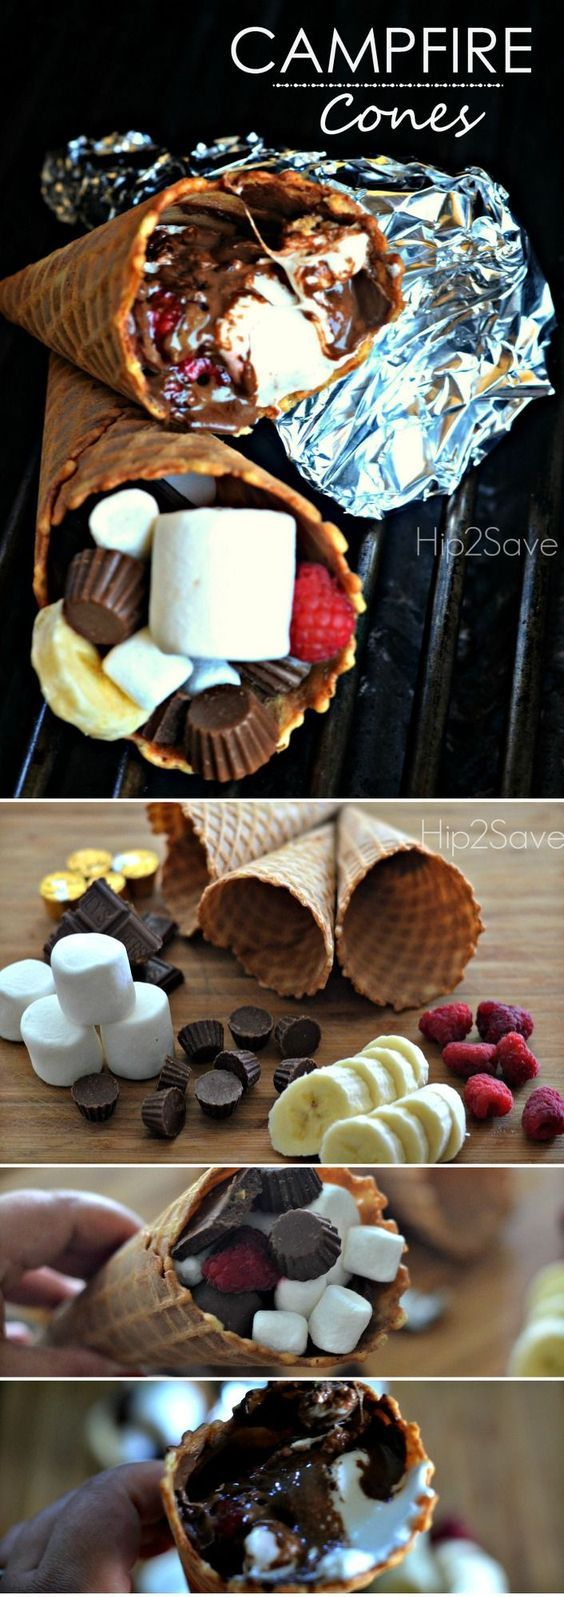 Campfire Cones: Delicious cones filled w marshmallows, chocolate, bananas, and etc.